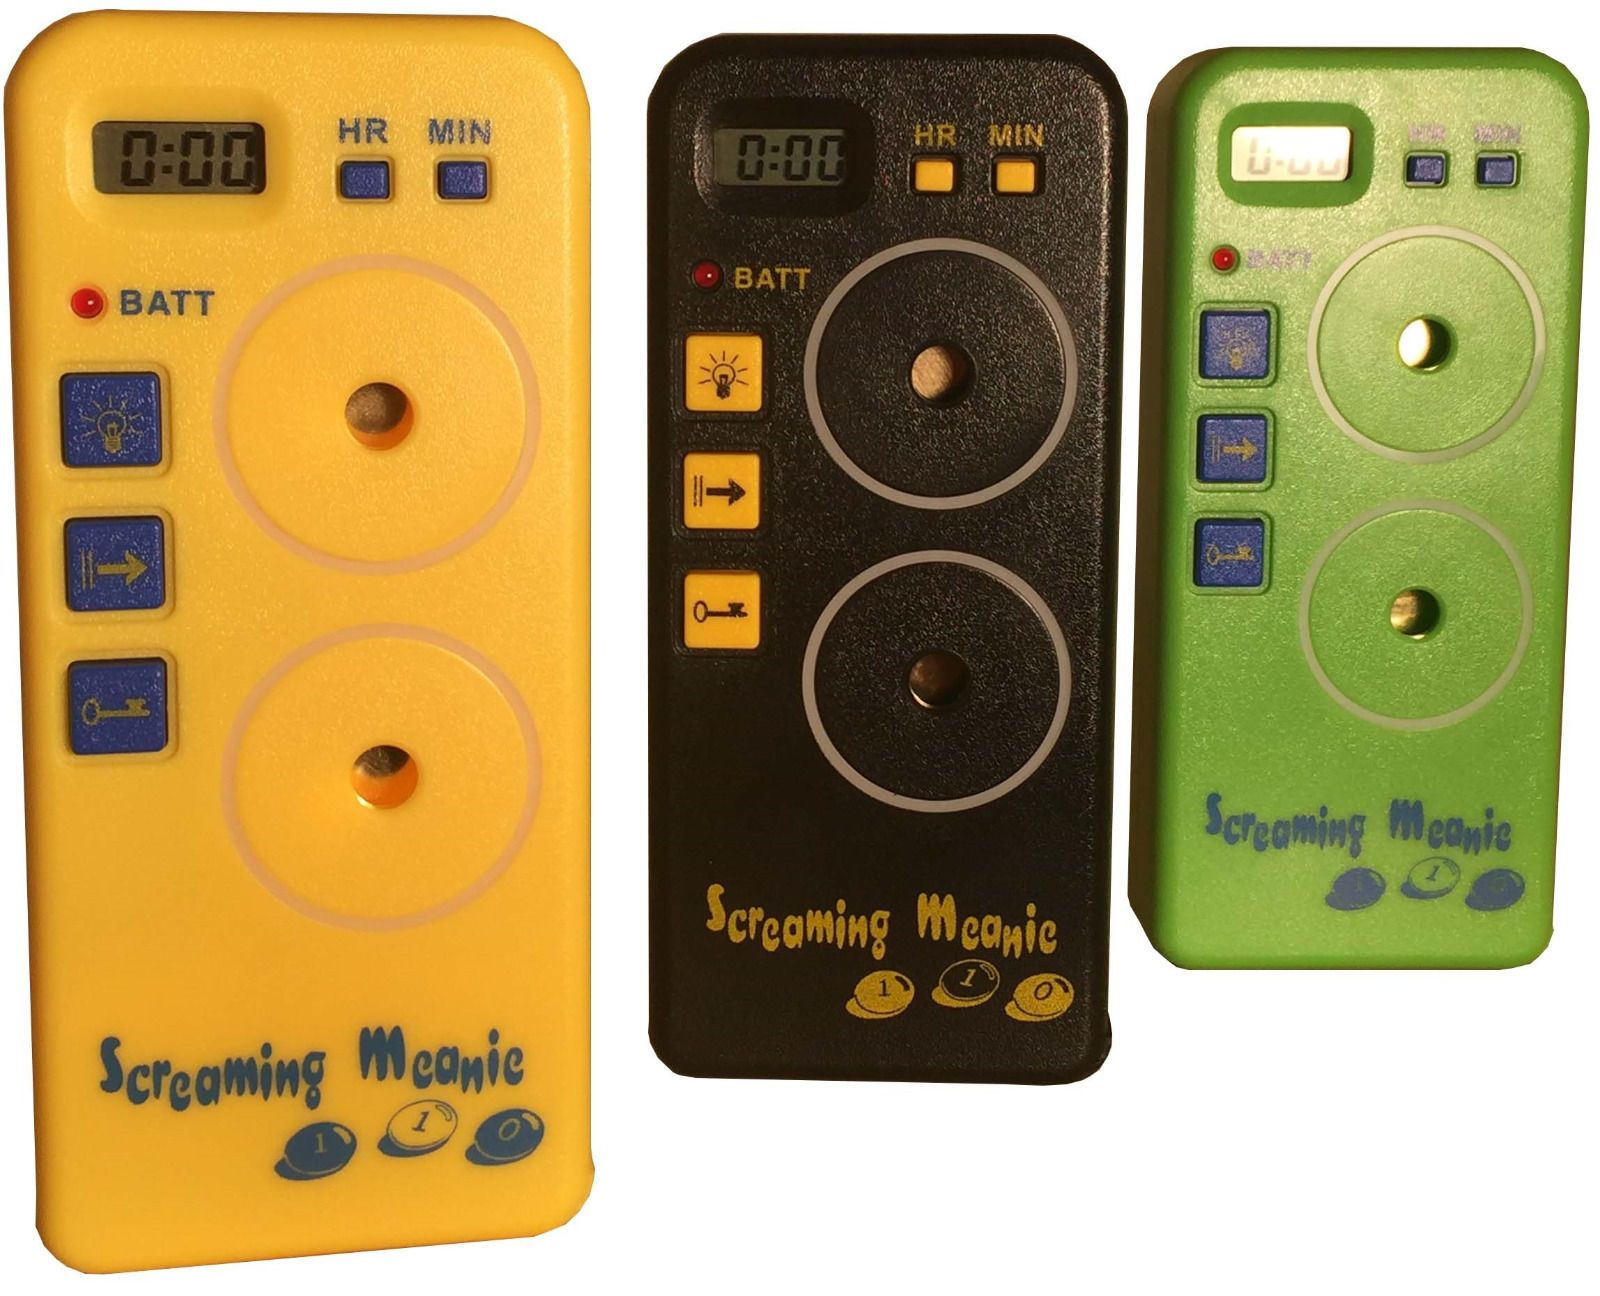 Extra Loud Alarm Timers Authentic Screaming Meanie TZ-120 Assorted Colors.